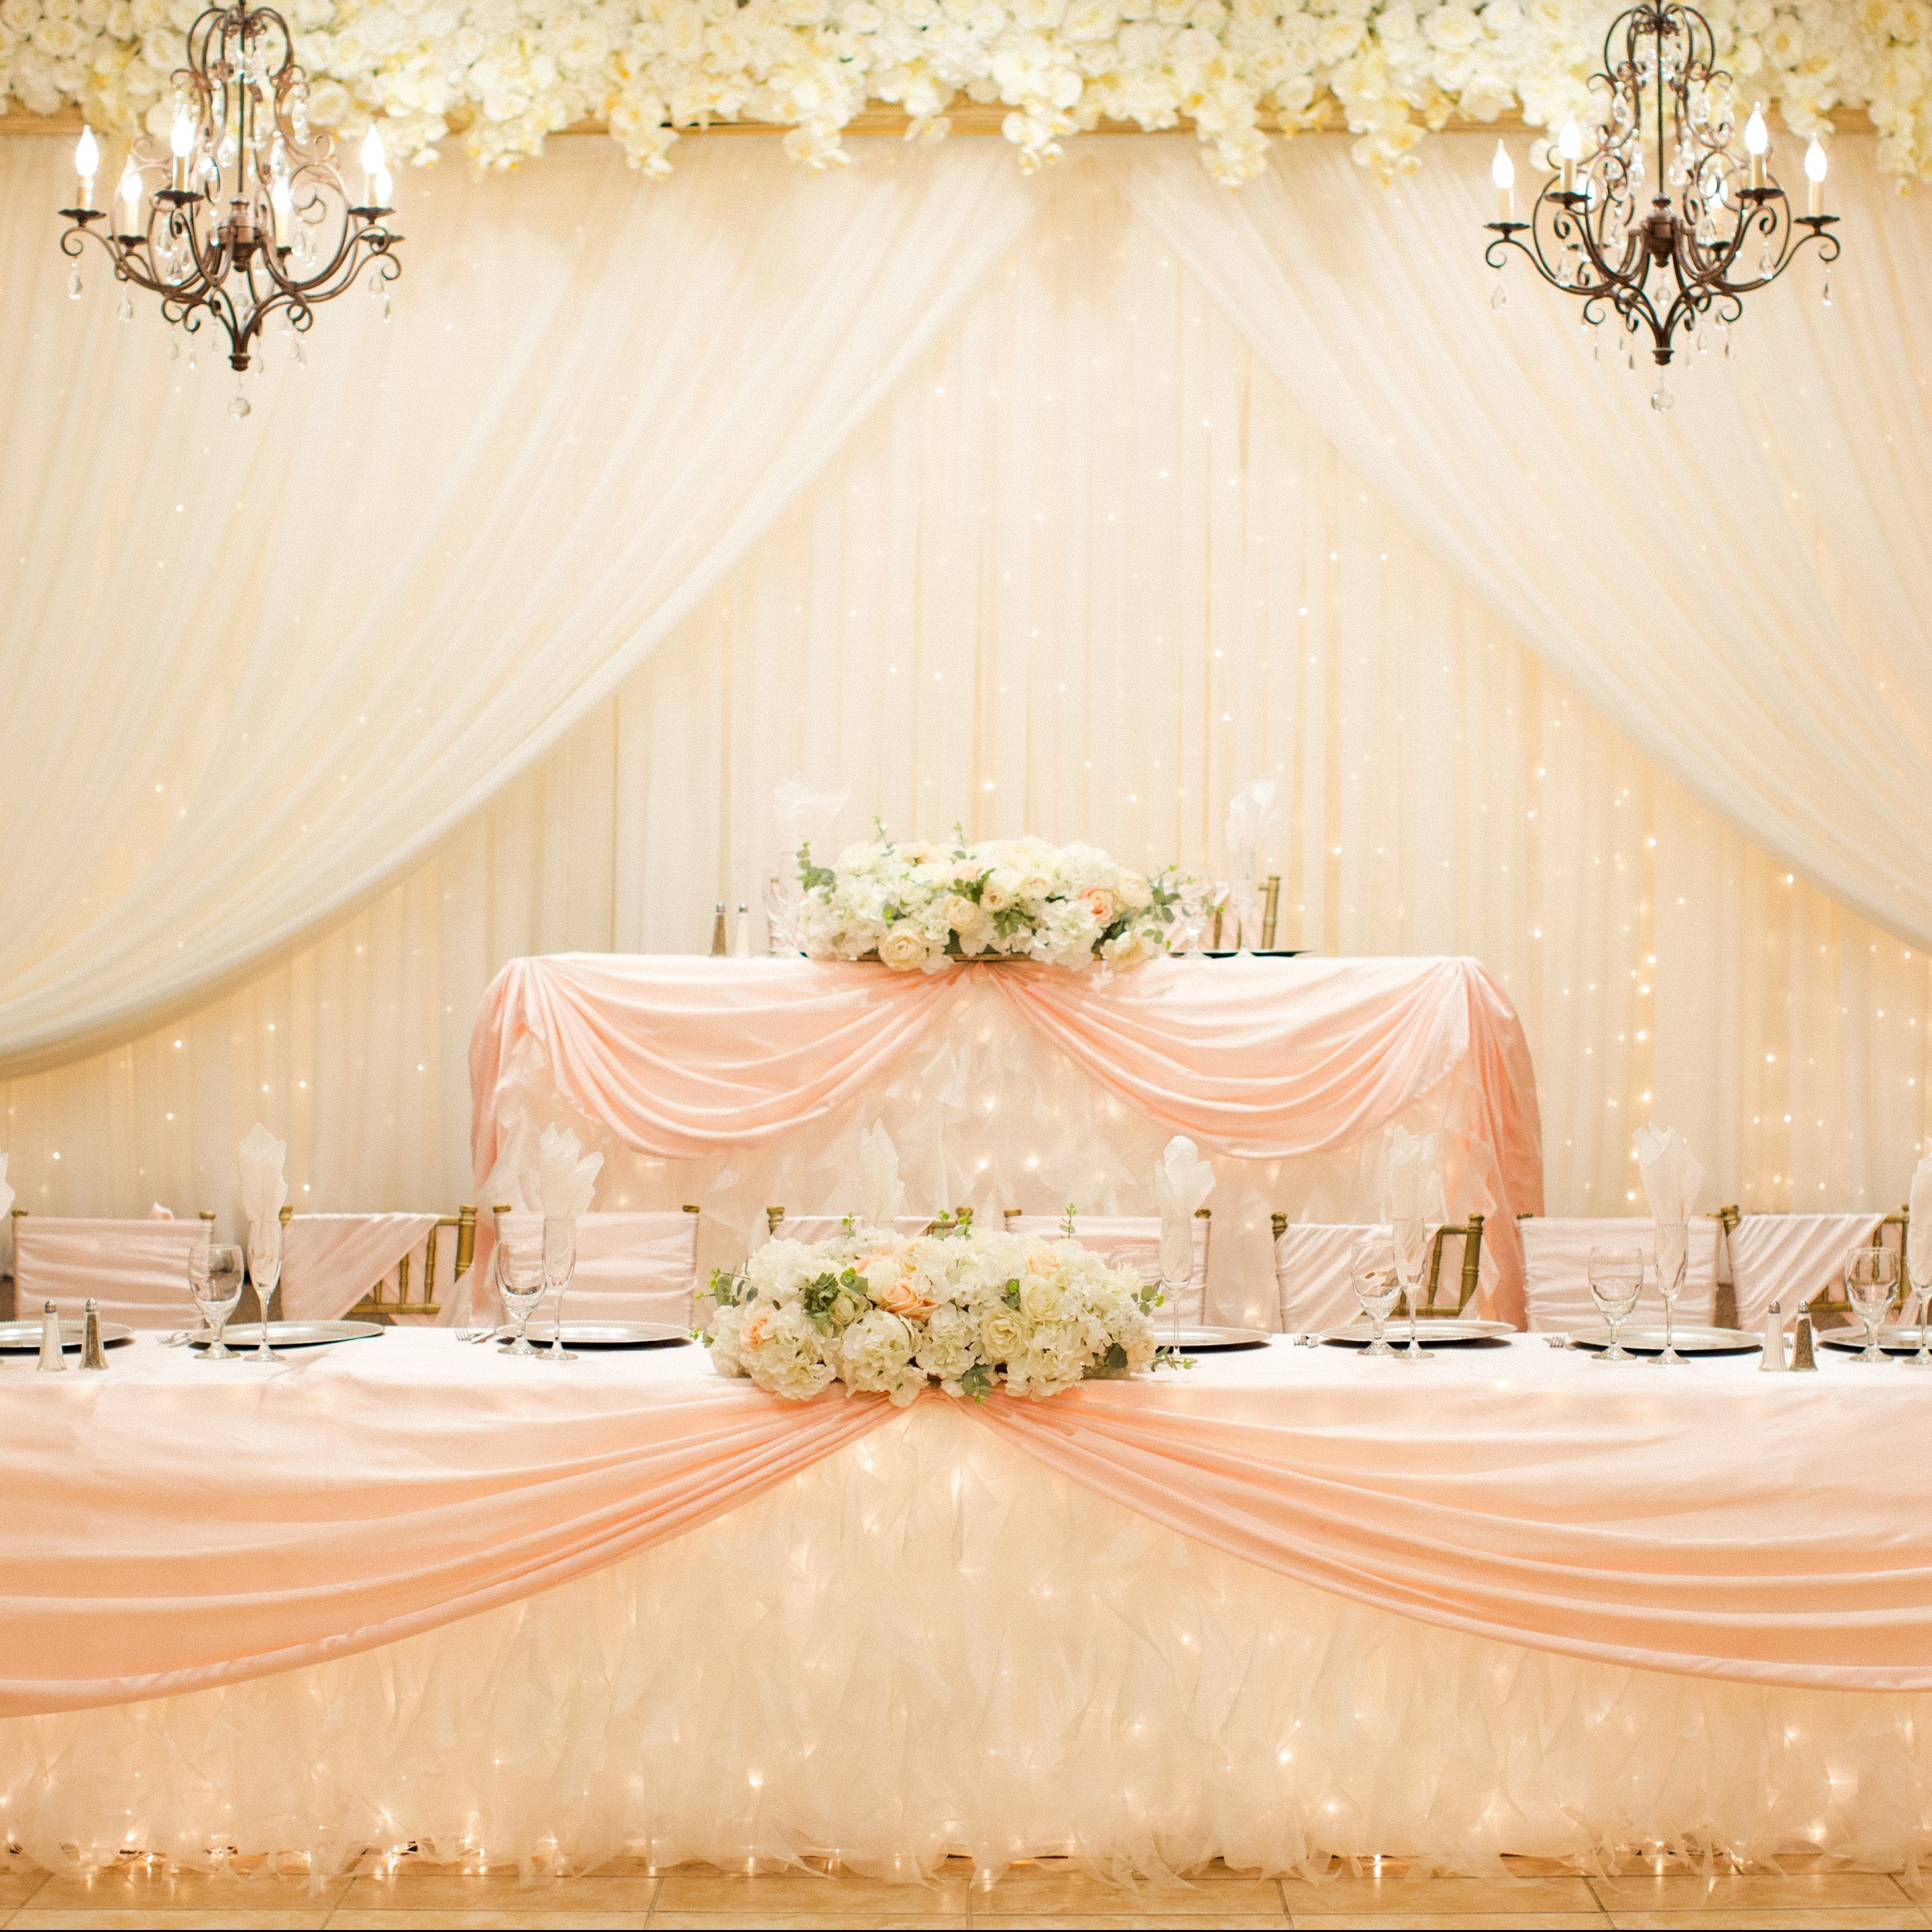 Villa Tuscana Reception Hall event showing bridal table in indoor reception